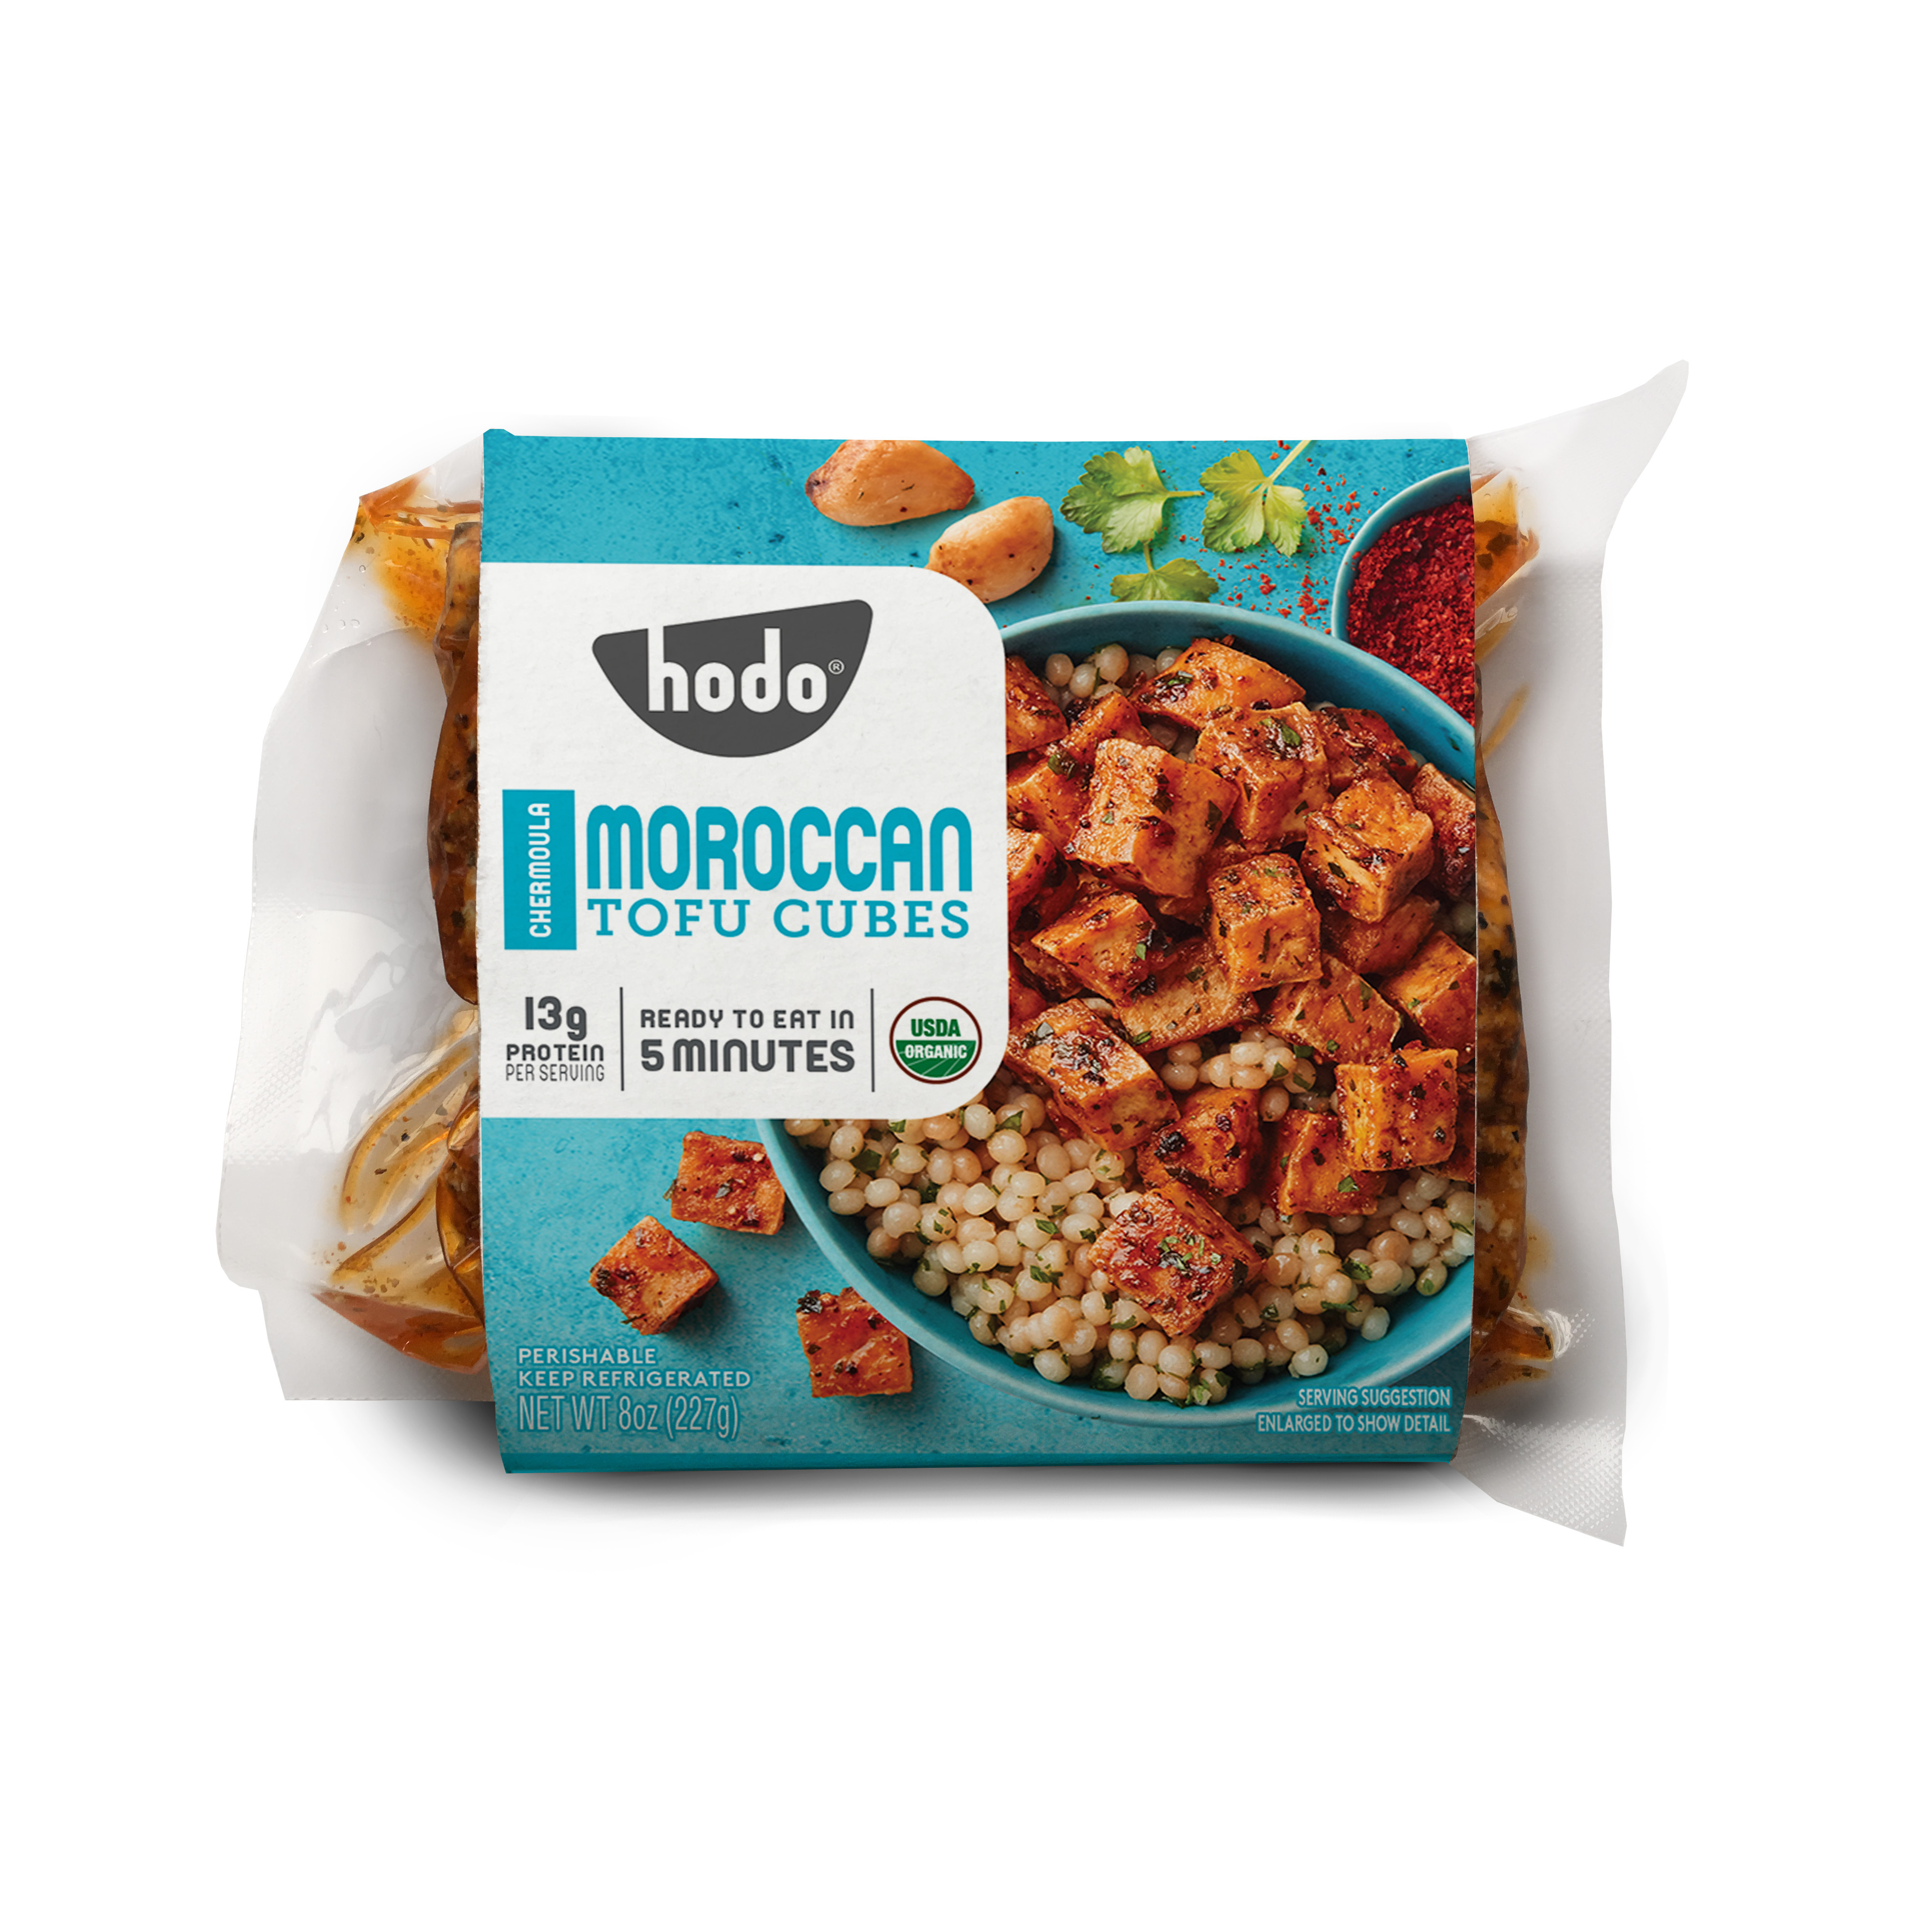 Chermoula Moroccan Tofu Cubes   The Natural Products Brands